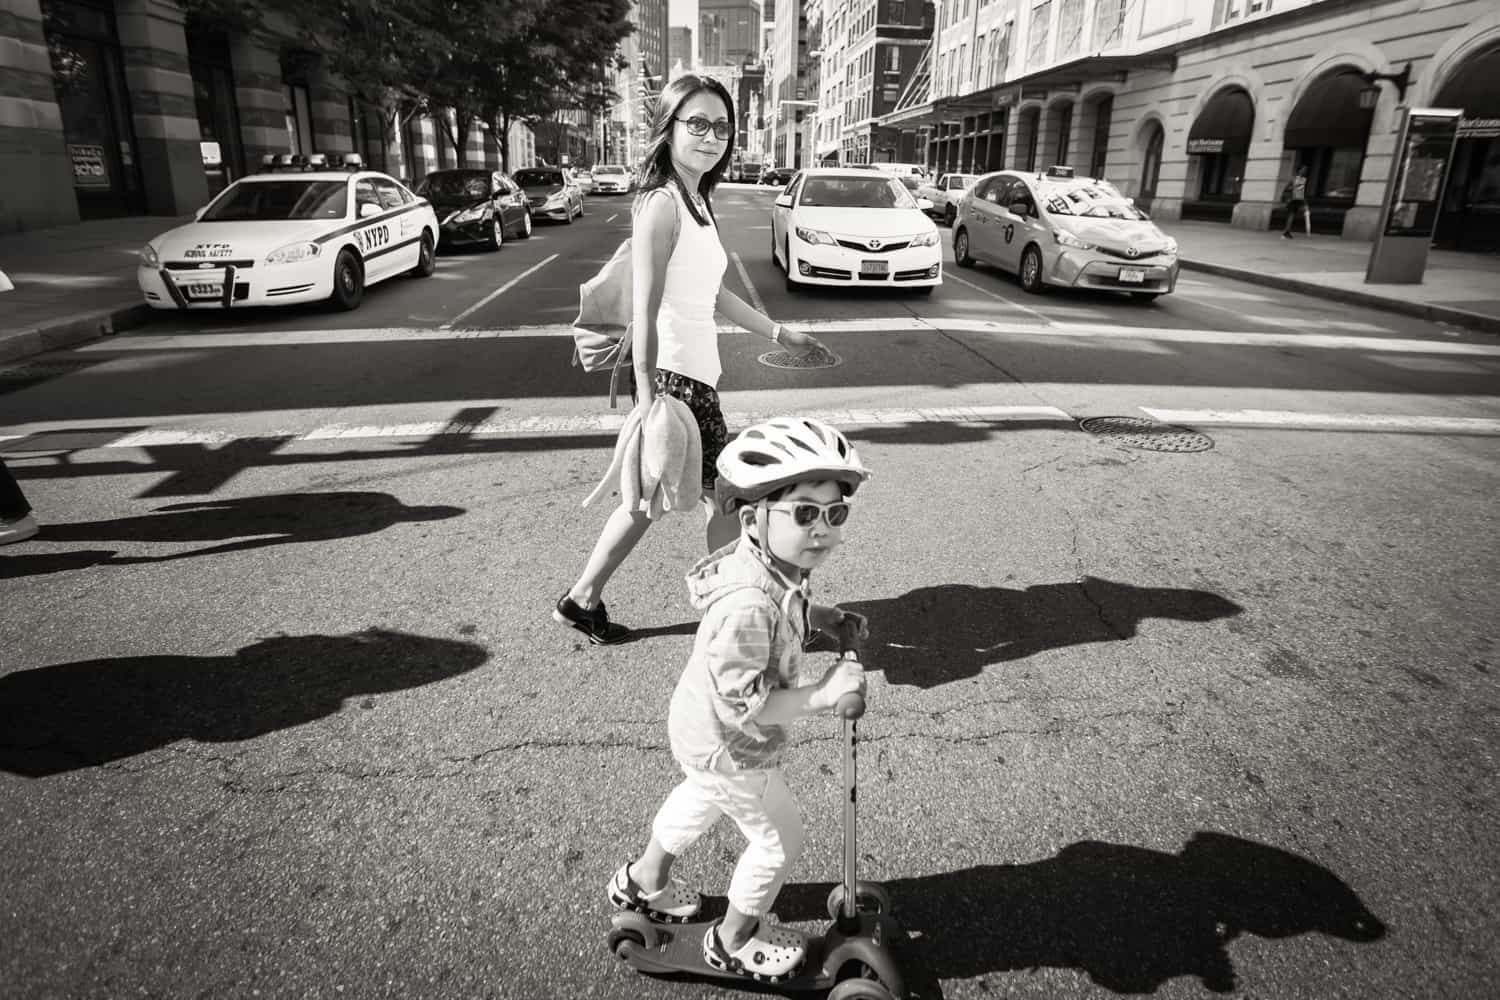 Black and white photo of mother and little boy on scooter walking in crosswalk